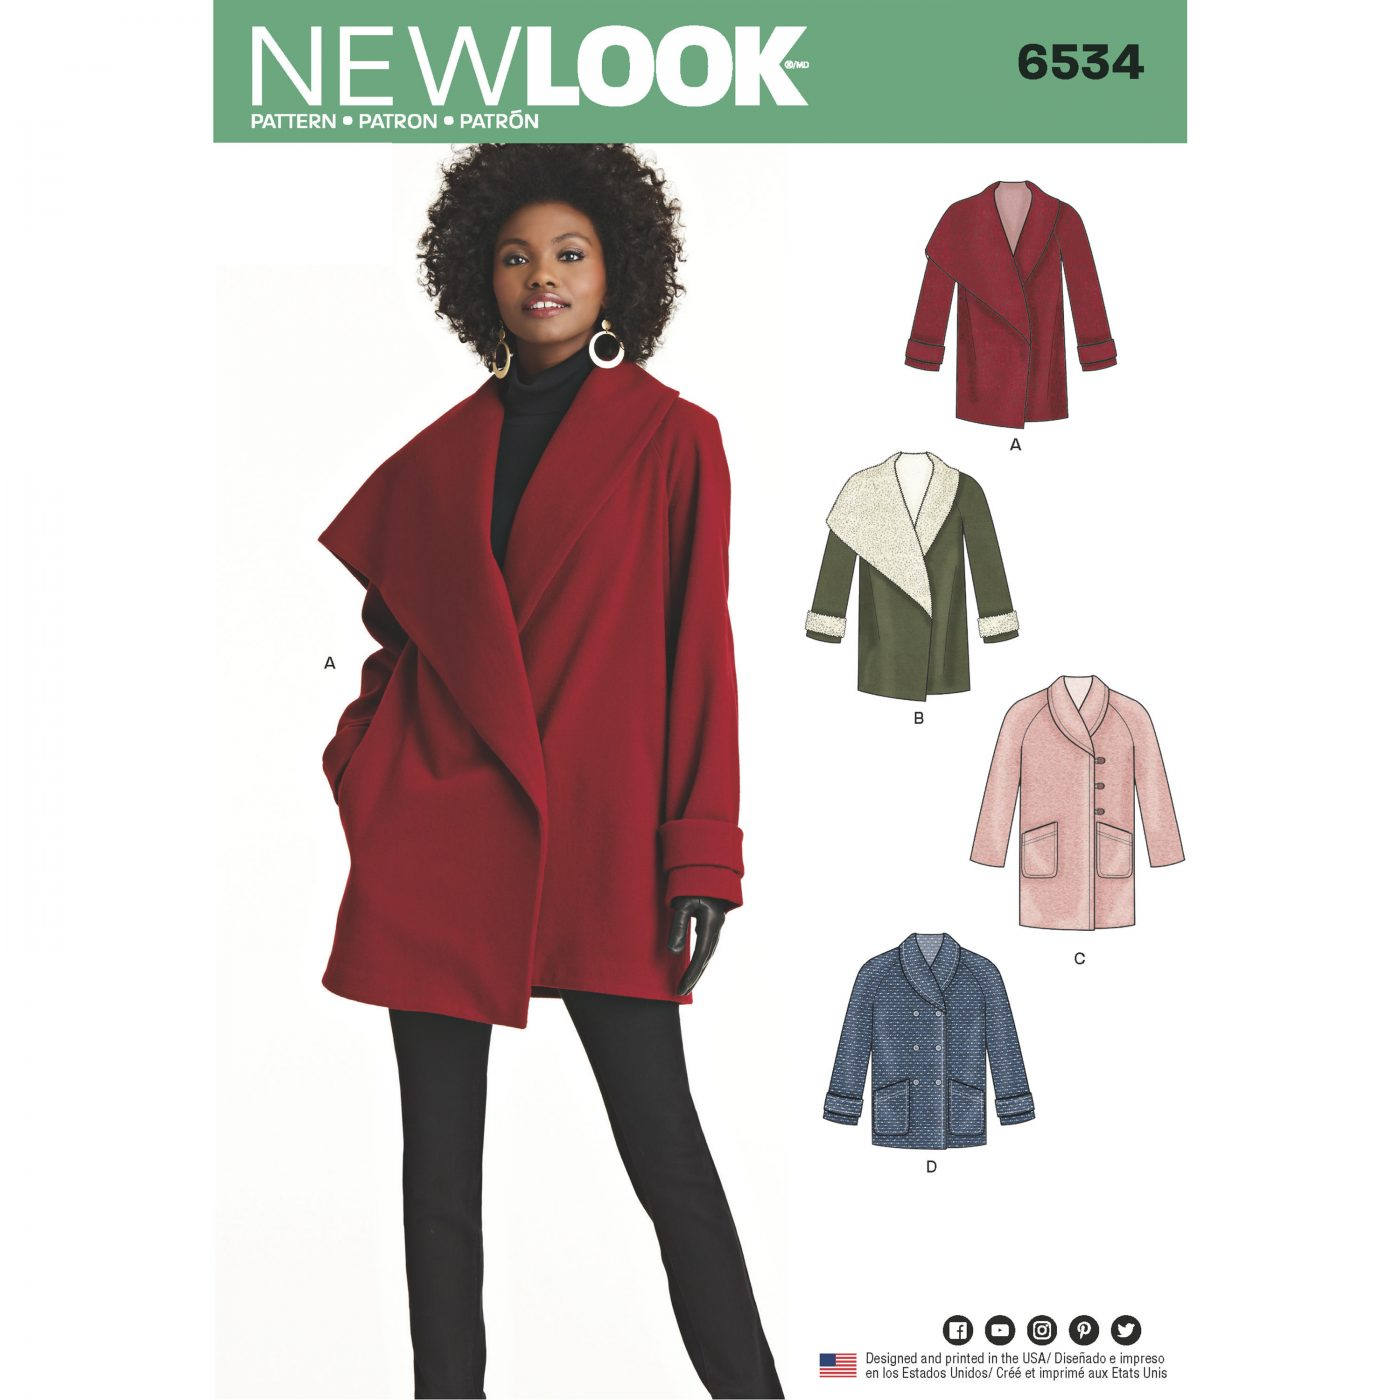 New Look 6534 Autumn/Winter '18 Trends to inspire your sewing